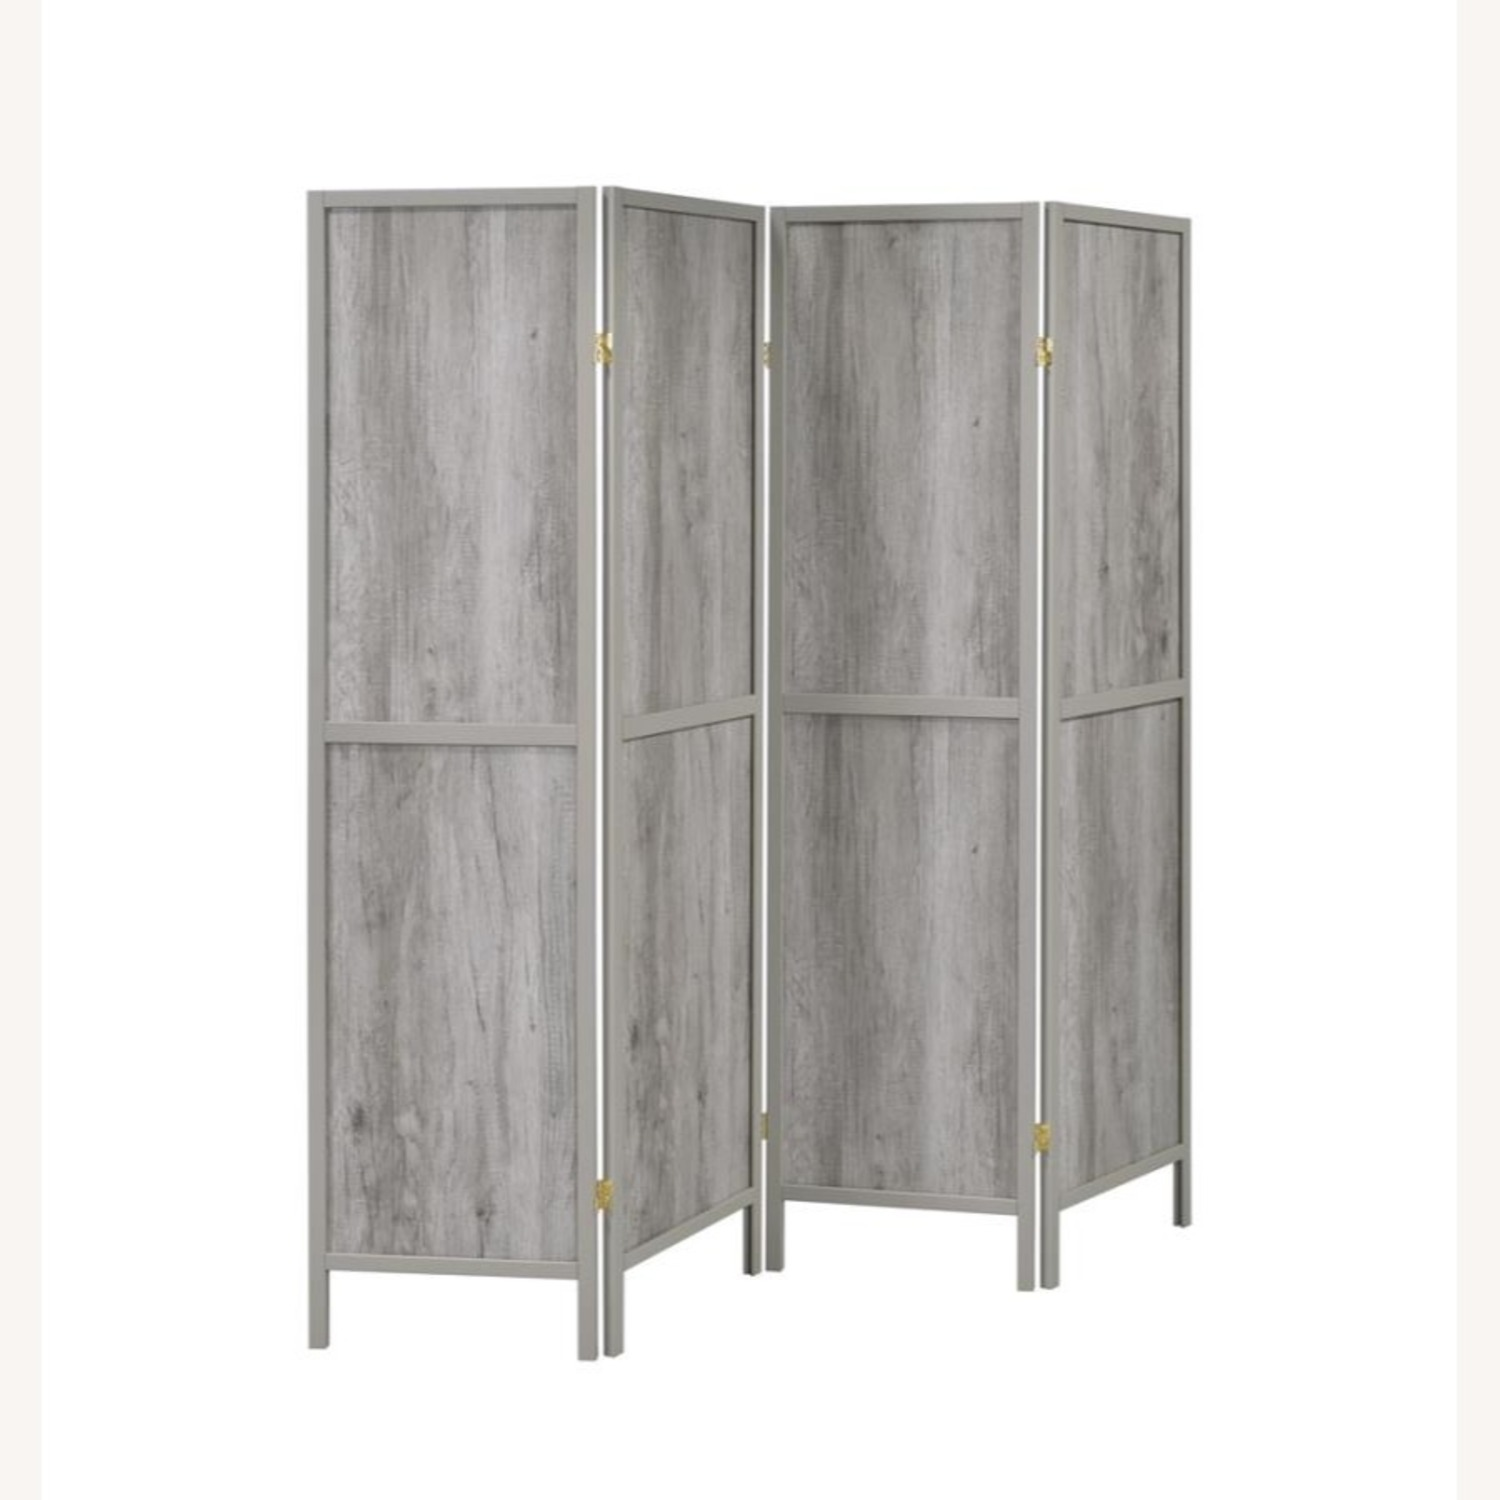 Four-Panel Folding Screen In Grey Driftwood Finish - image-1